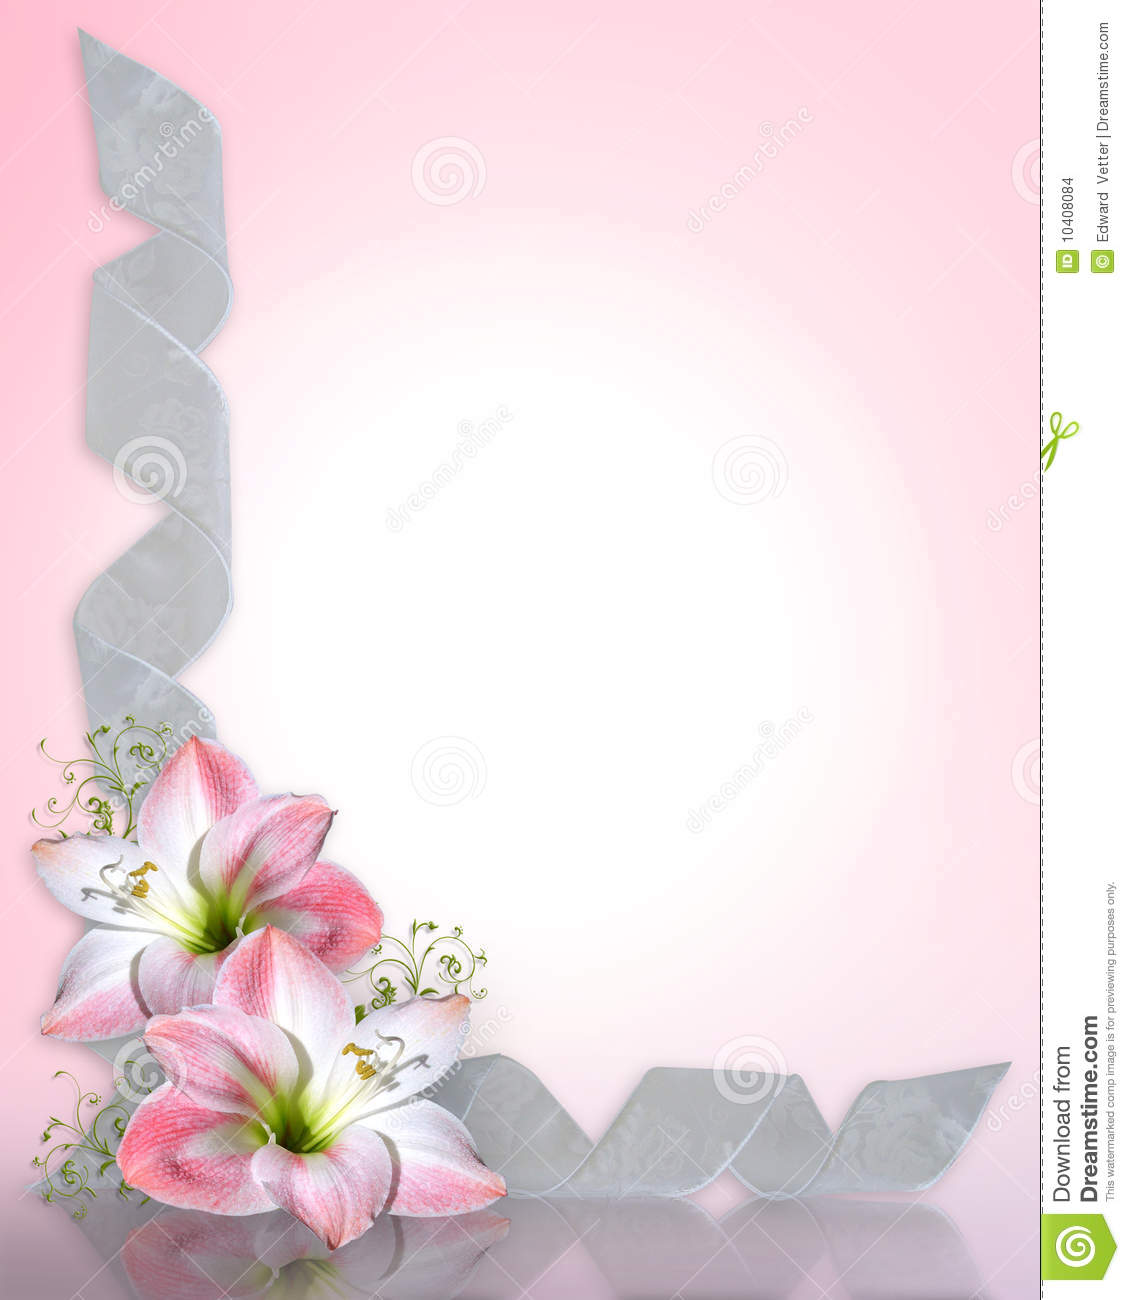 Wedding invitation Amaryllis pink Border